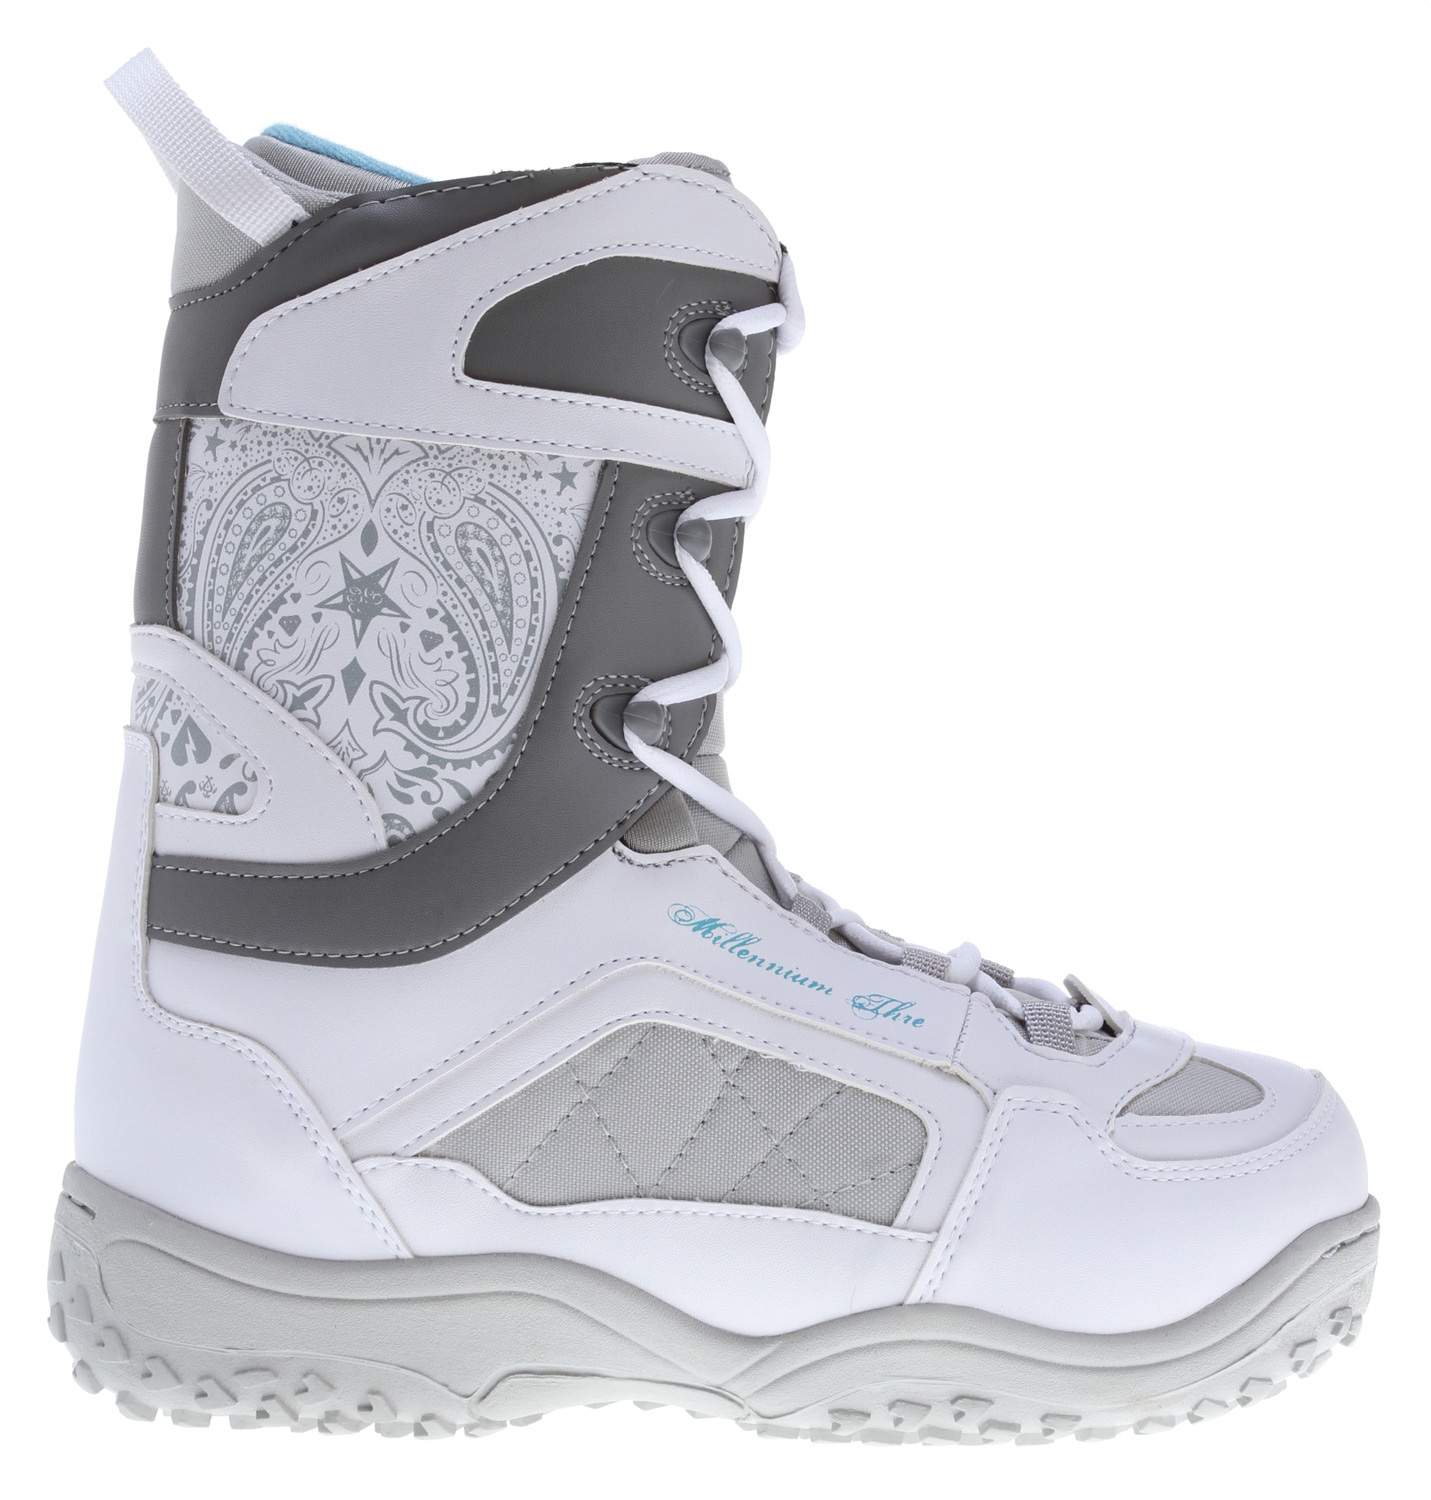 Snowboard These snowboarding boots from M3 offer style, comfort and performance. These white boots have a great stiff fit and padded design.Key Features of the M3 Venus Snowboard Boots:  Integrated liner  Speed hook lacing system  Full ankle support  Cup sole  Synthetic and stitched upper  Pull strap - $47.95